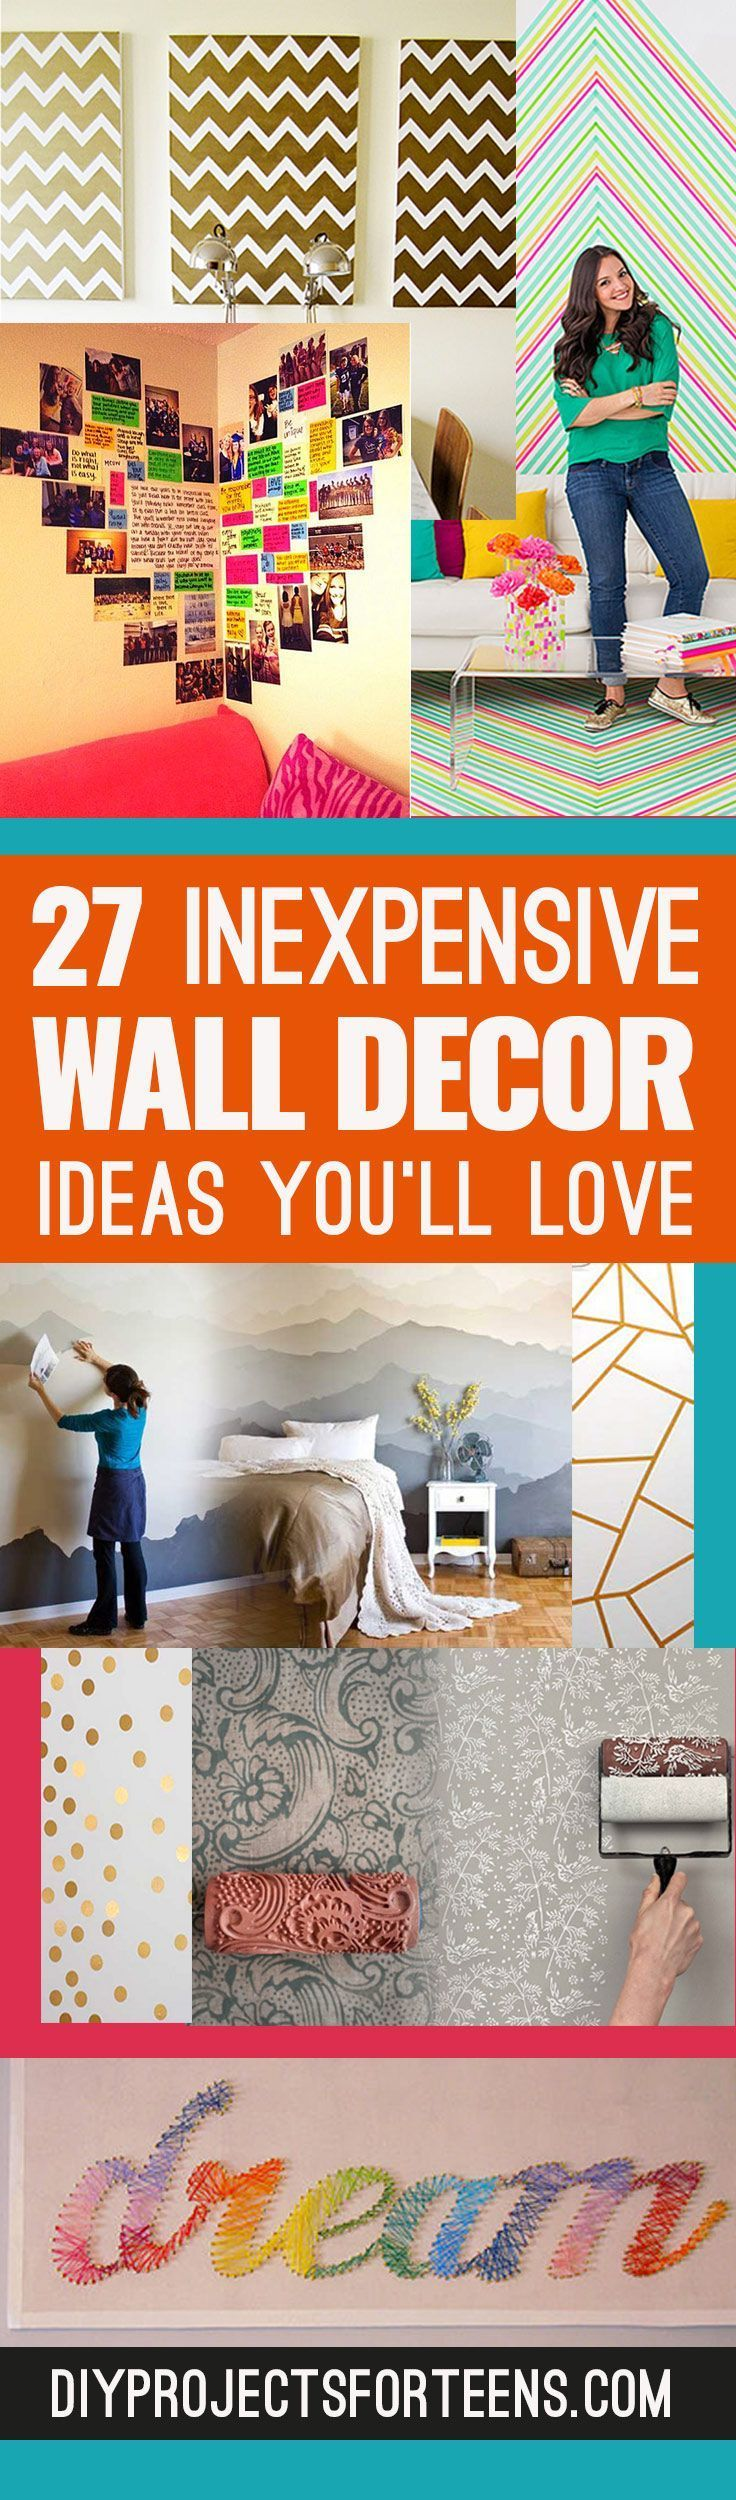 Cute DIY Wall Art Ideas You'll Love - Creative Room Decor on A Budget for Bedroom, Bath and Family. Teens, Dorms, Kids on a Budget